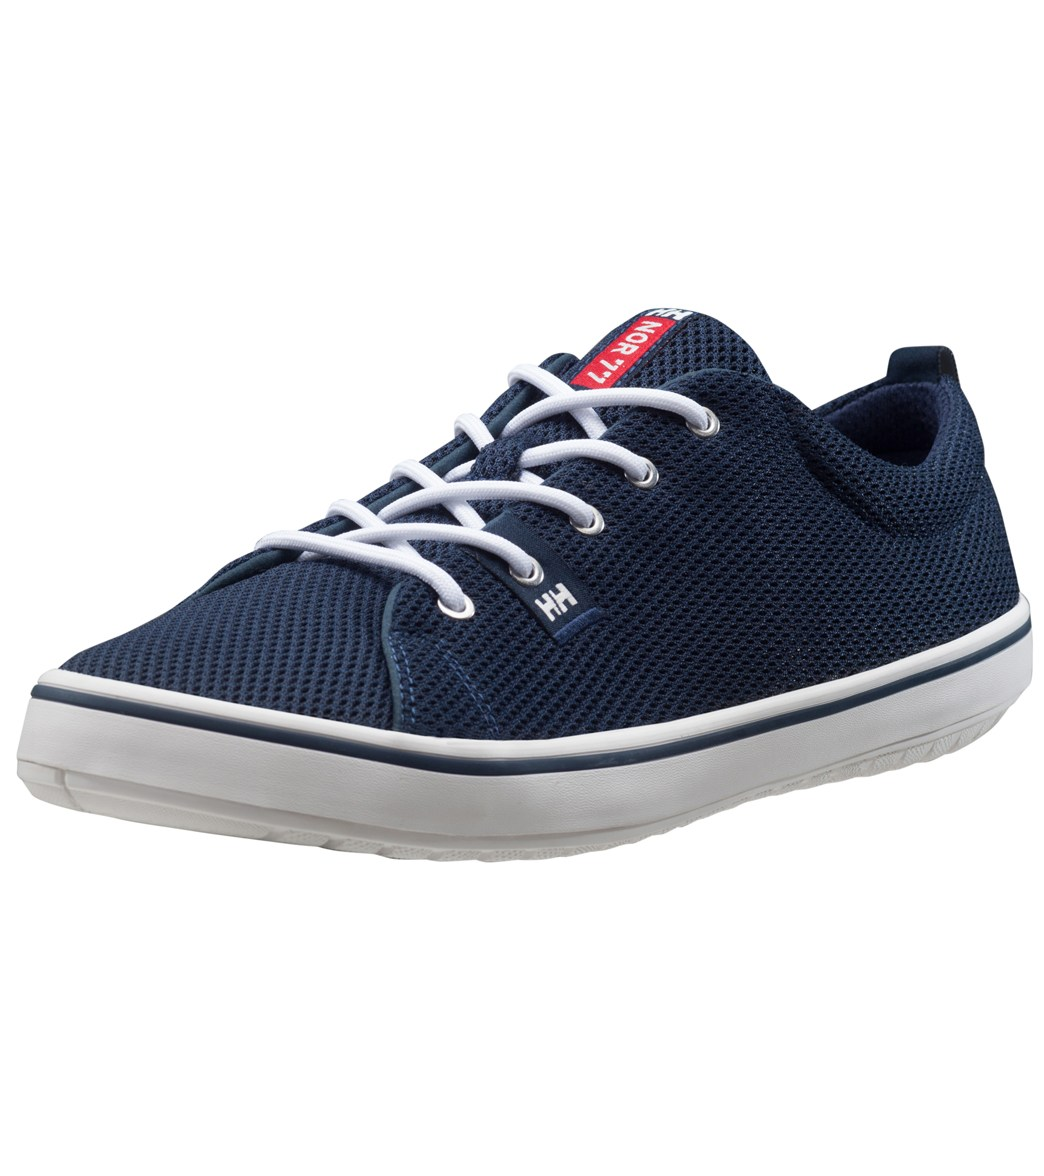 Mens Scurry 2 Boating Shoes Helly Hansen 4gCdX7